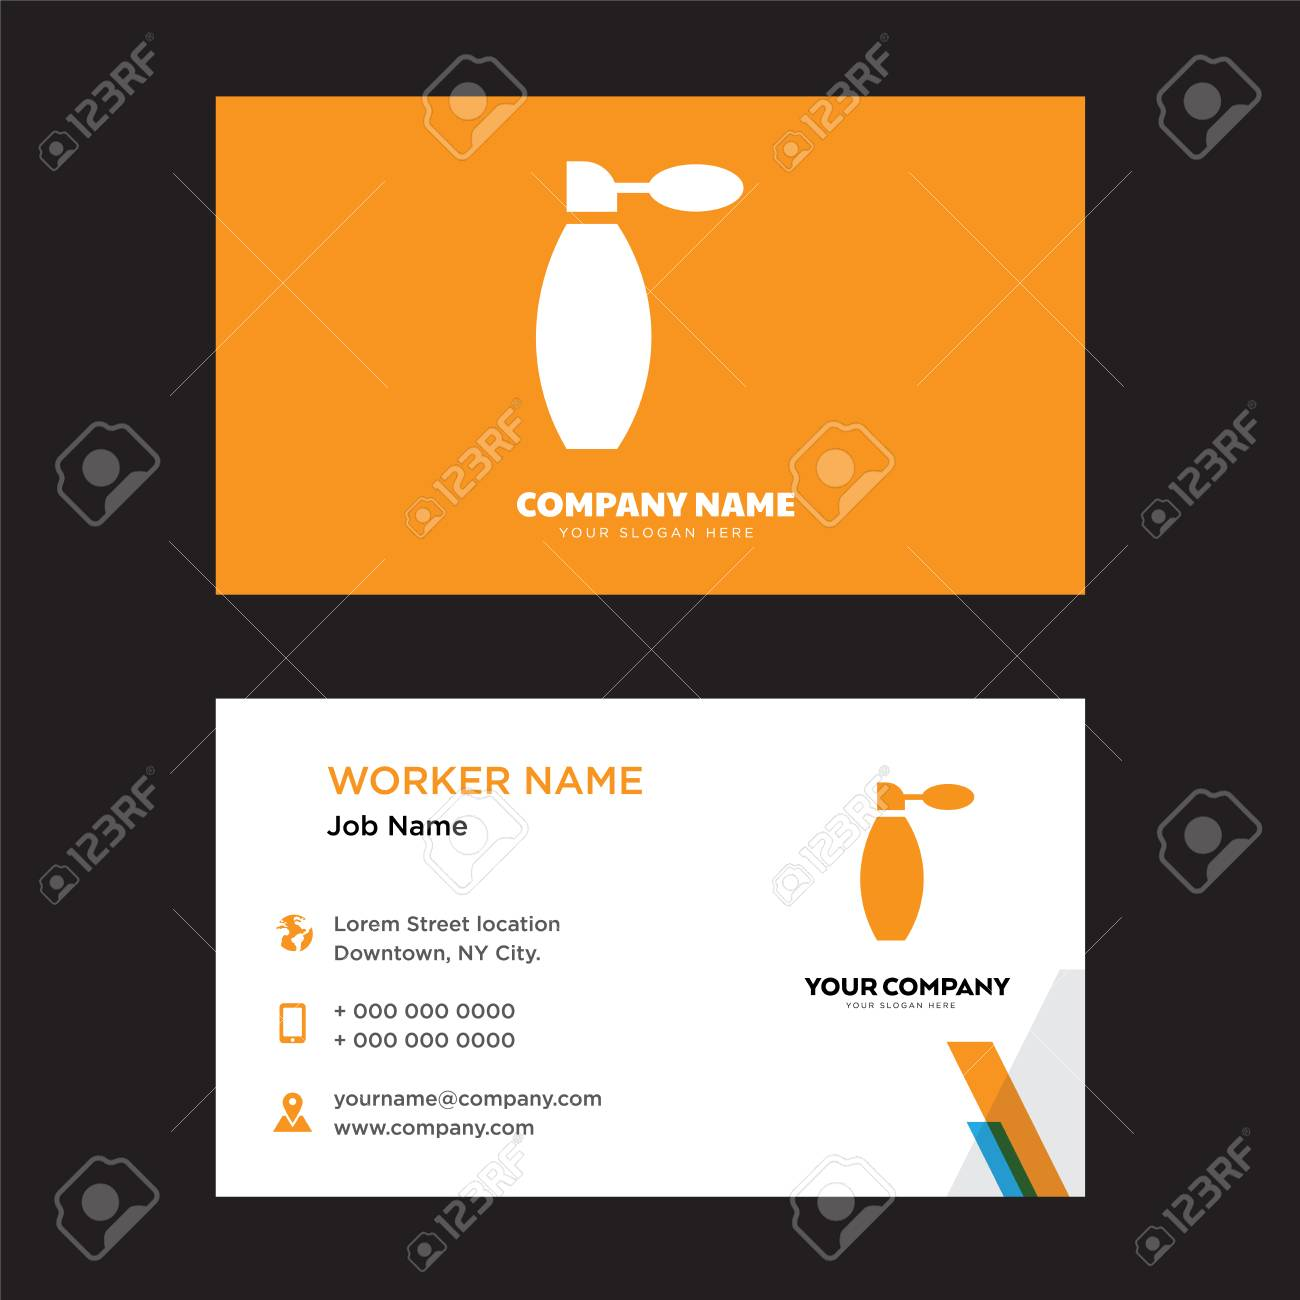 Perfume Business Card Design Template, Visiting For Your Company ...